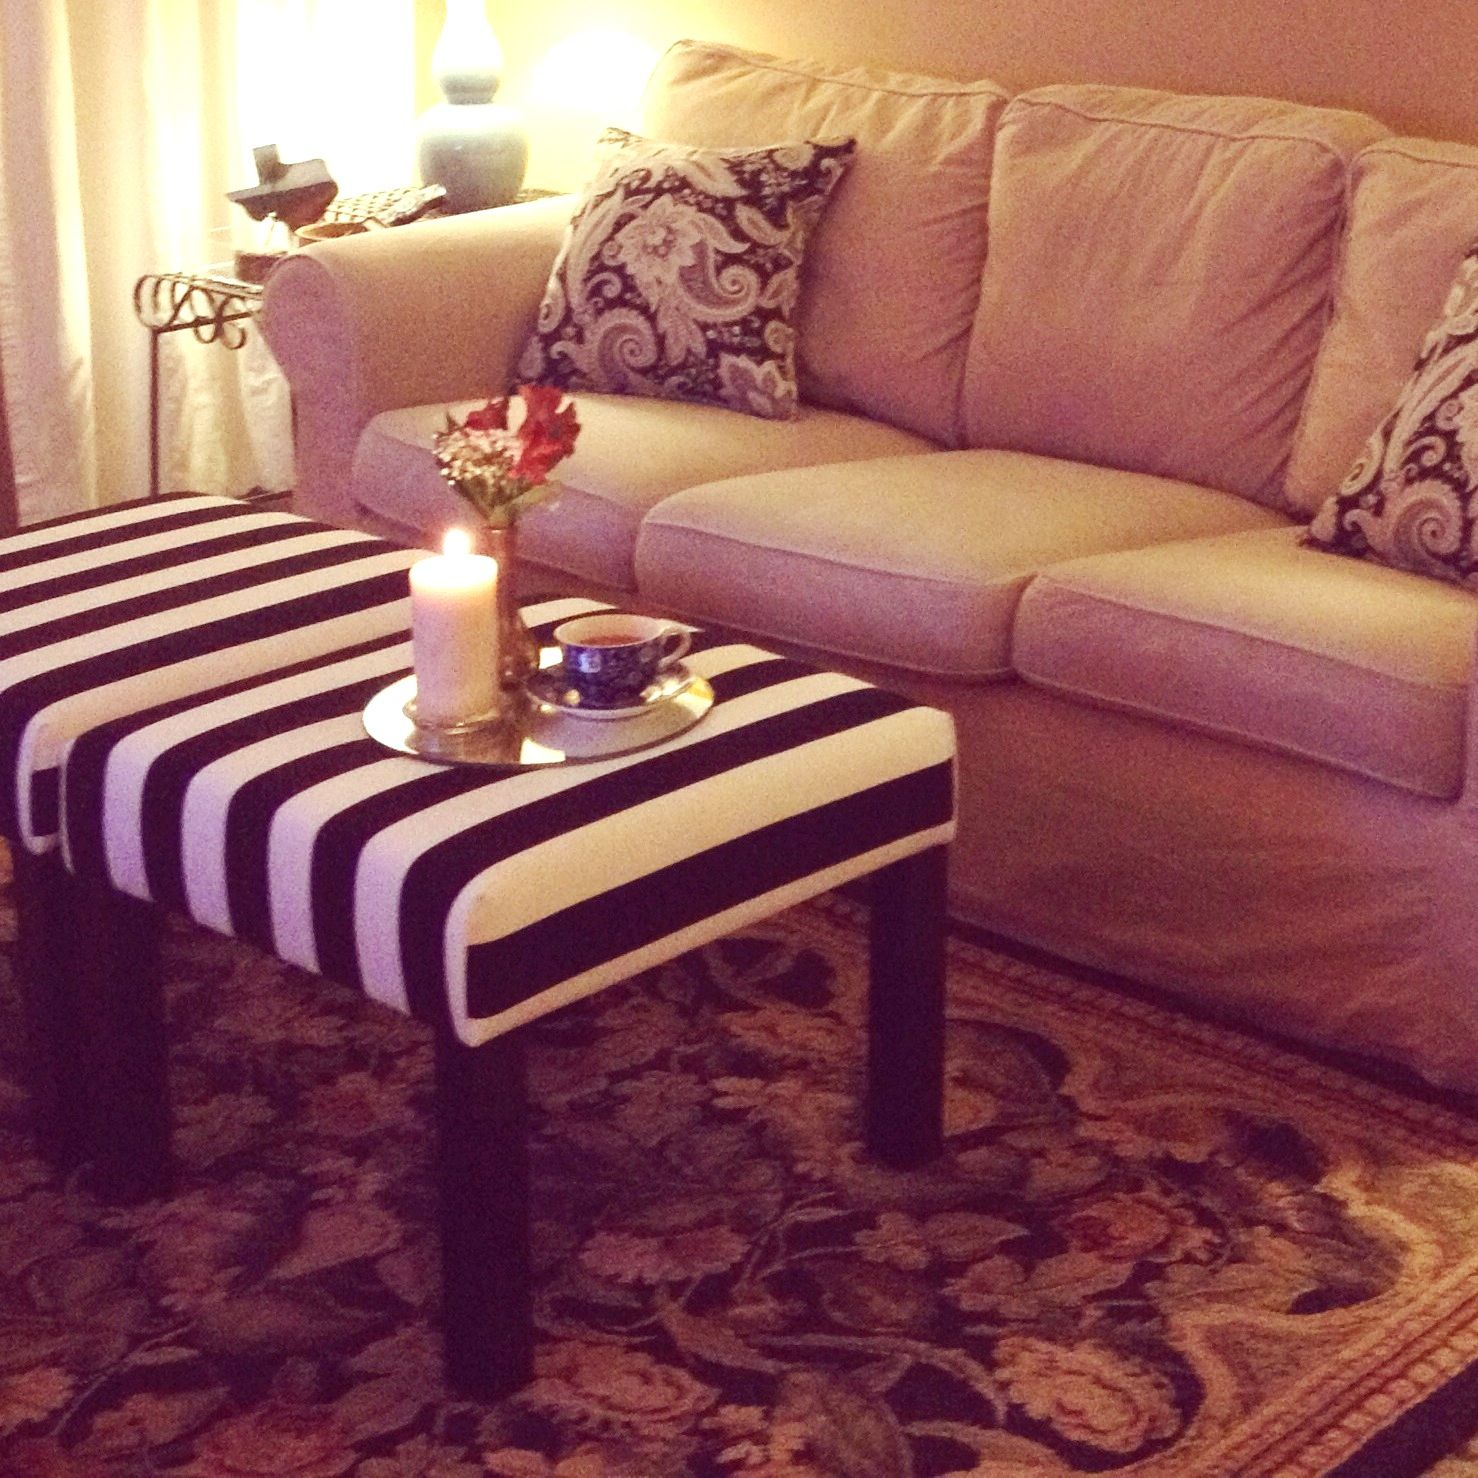 Frugal Pin Of The Day Diy Ottoman Ikea Lack Side Table Ikea Lack